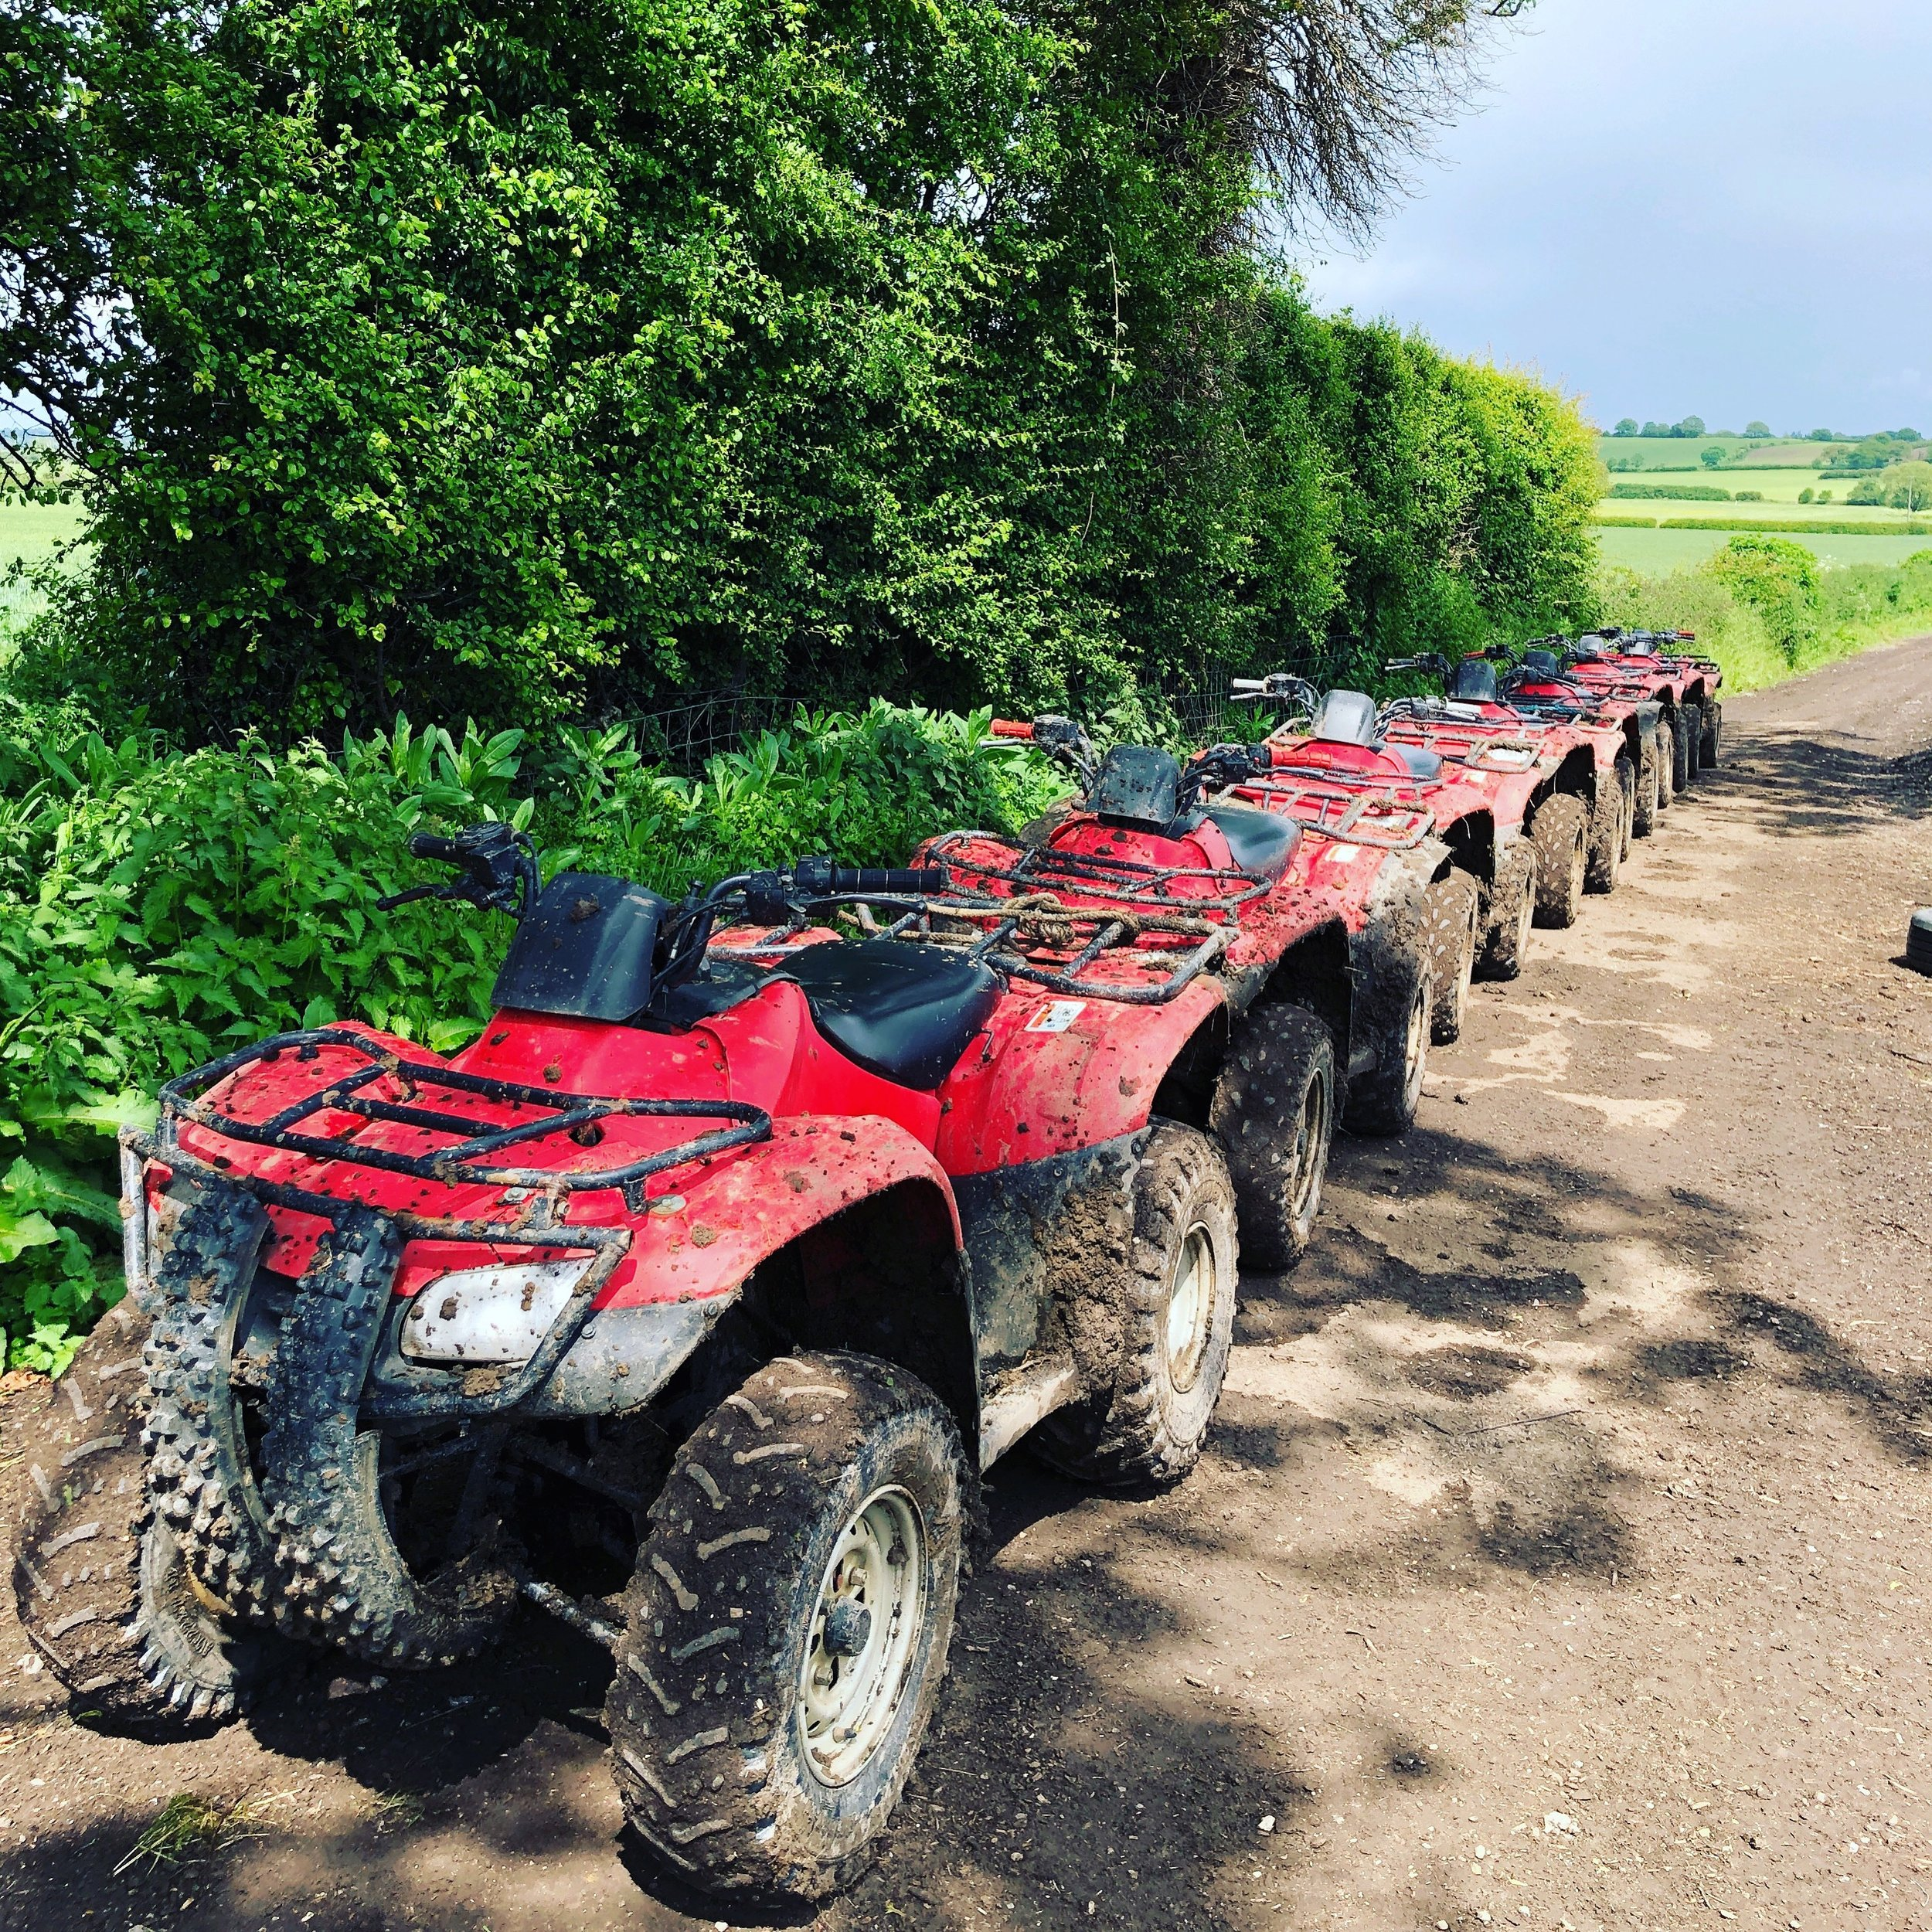 Quad Adventures - Instructor led Quad Biking through different terrain and trails for family days out or groups